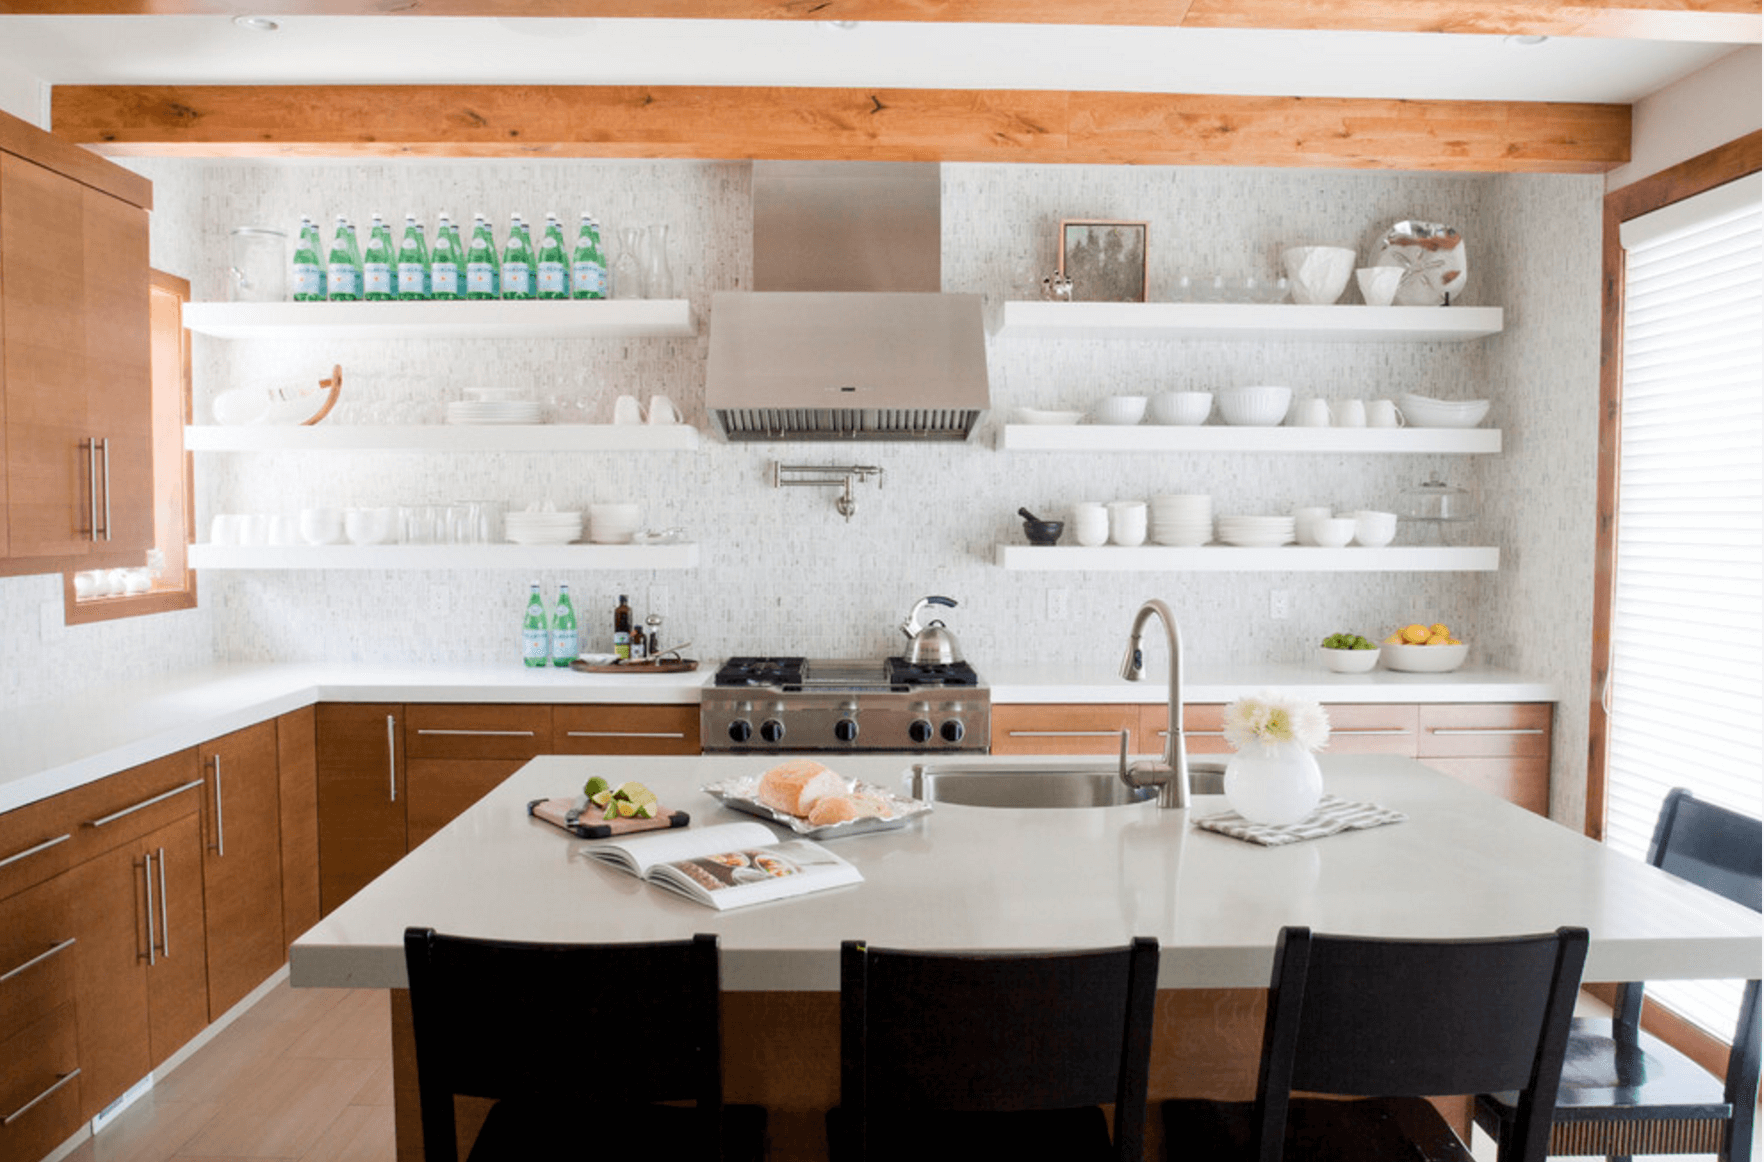 How To Achieve And Love Open Shelving In Your Kitchen,Price Tops Gold Earrings Designs For Daily Use